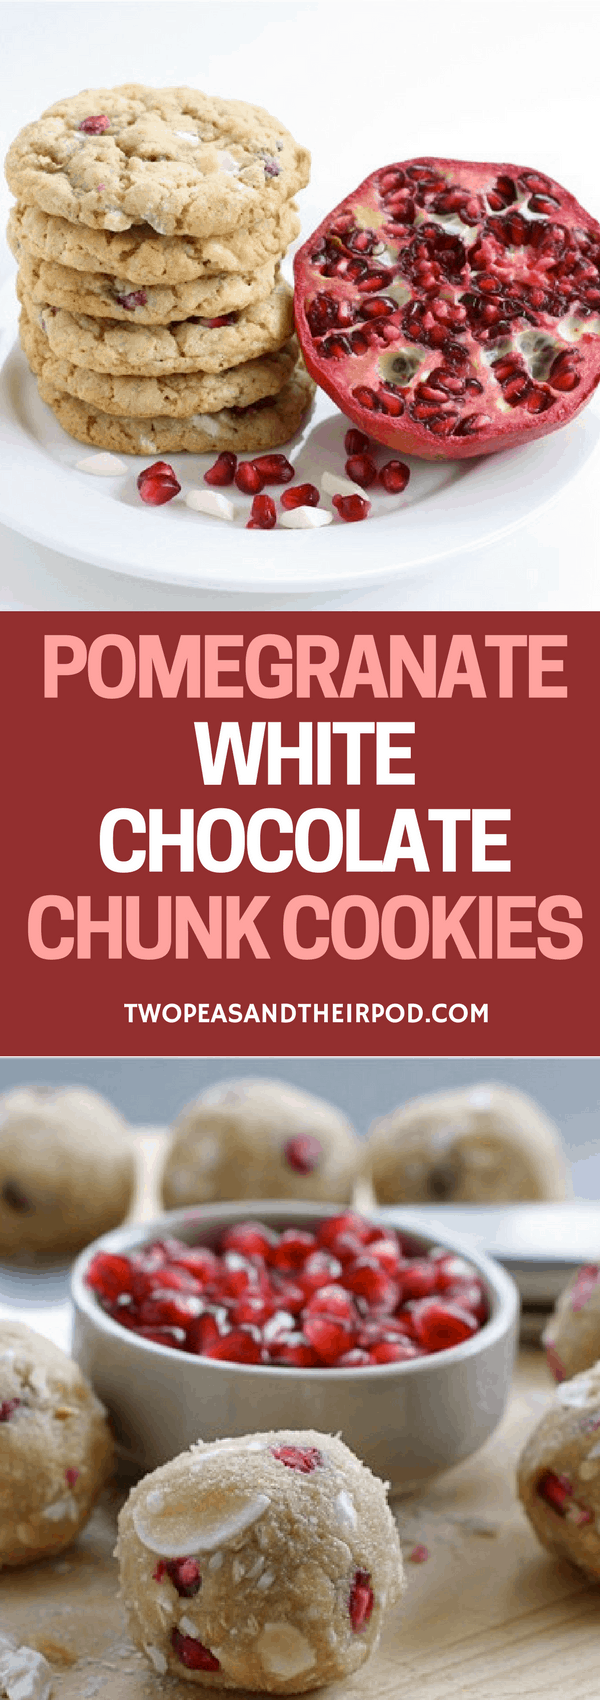 Pomegranate White Chocolate Chunk Cookies are the perfect Christmas cookie! #pomegranate #cookies #Christmascookies #whitechocolate